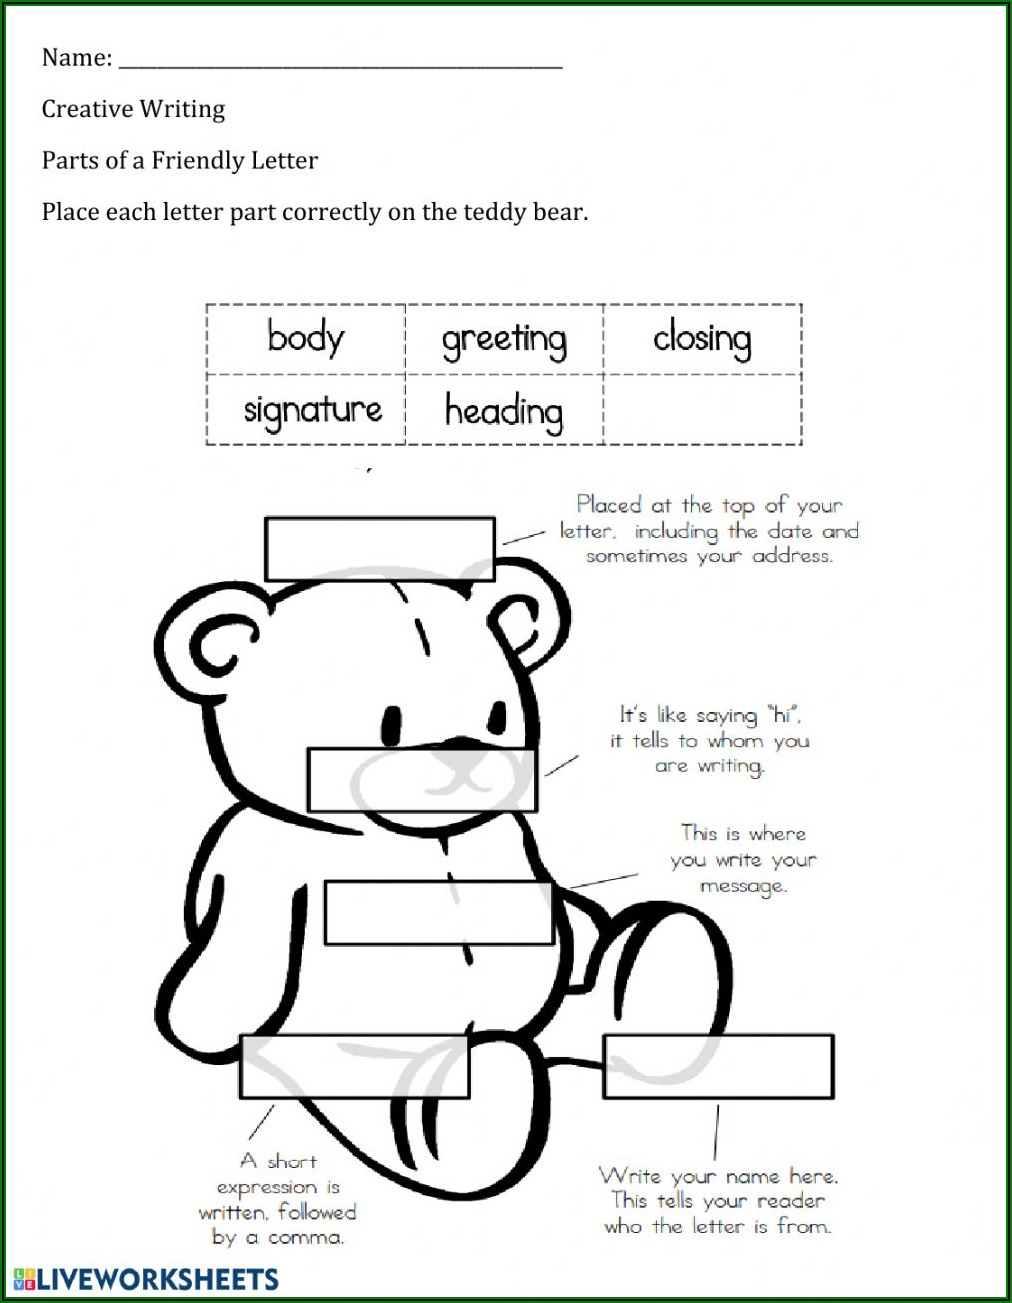 Parts Of A Friendly Letter Worksheet Pdf